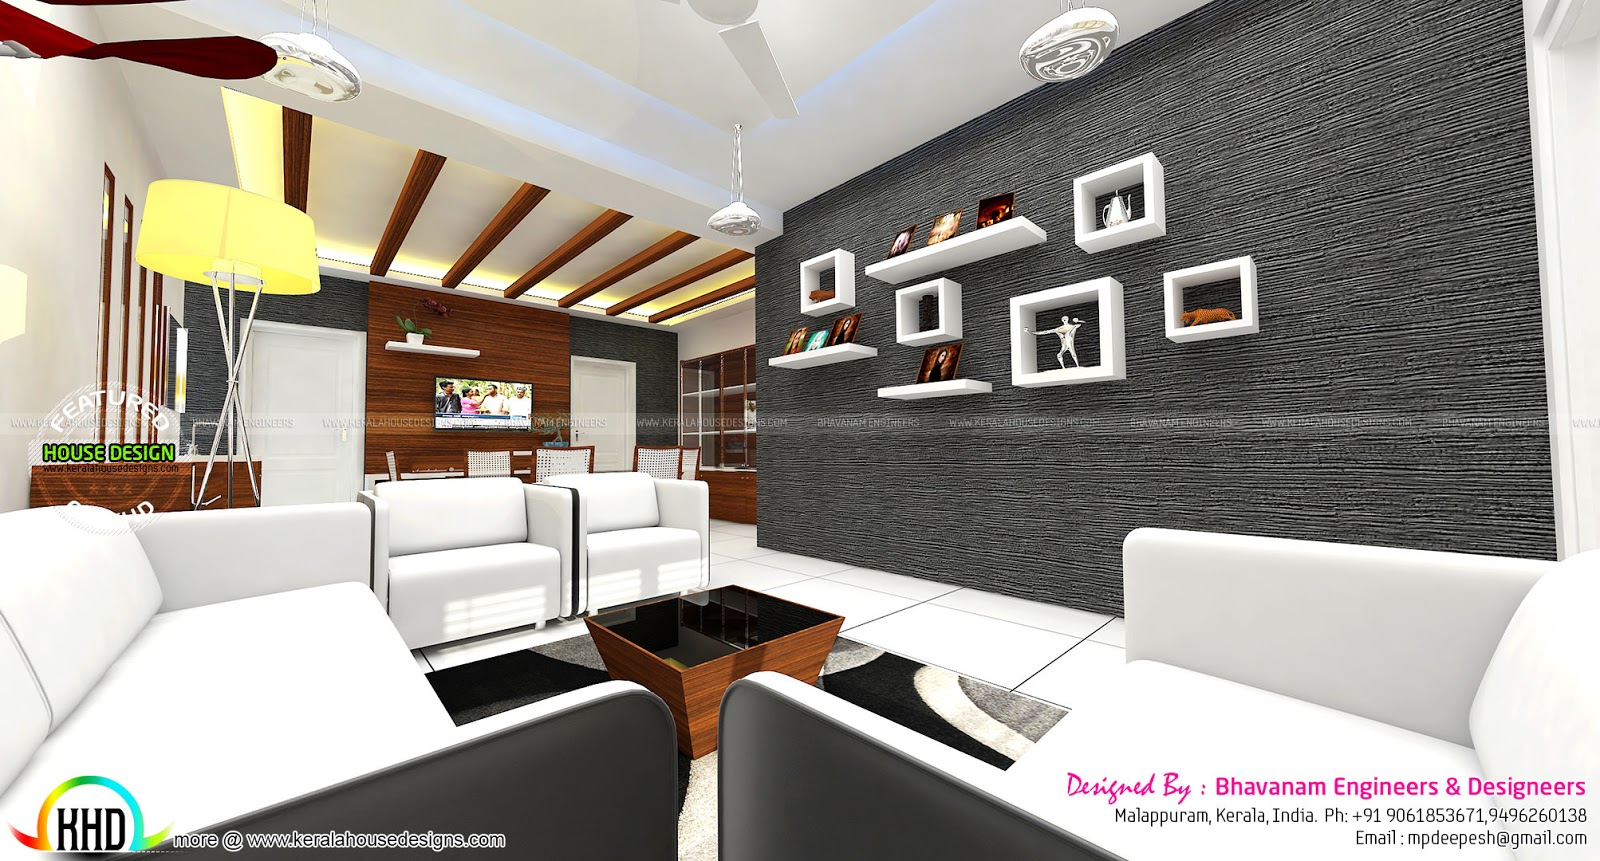 Living room interior decors ideas kerala home design and Design interior of house